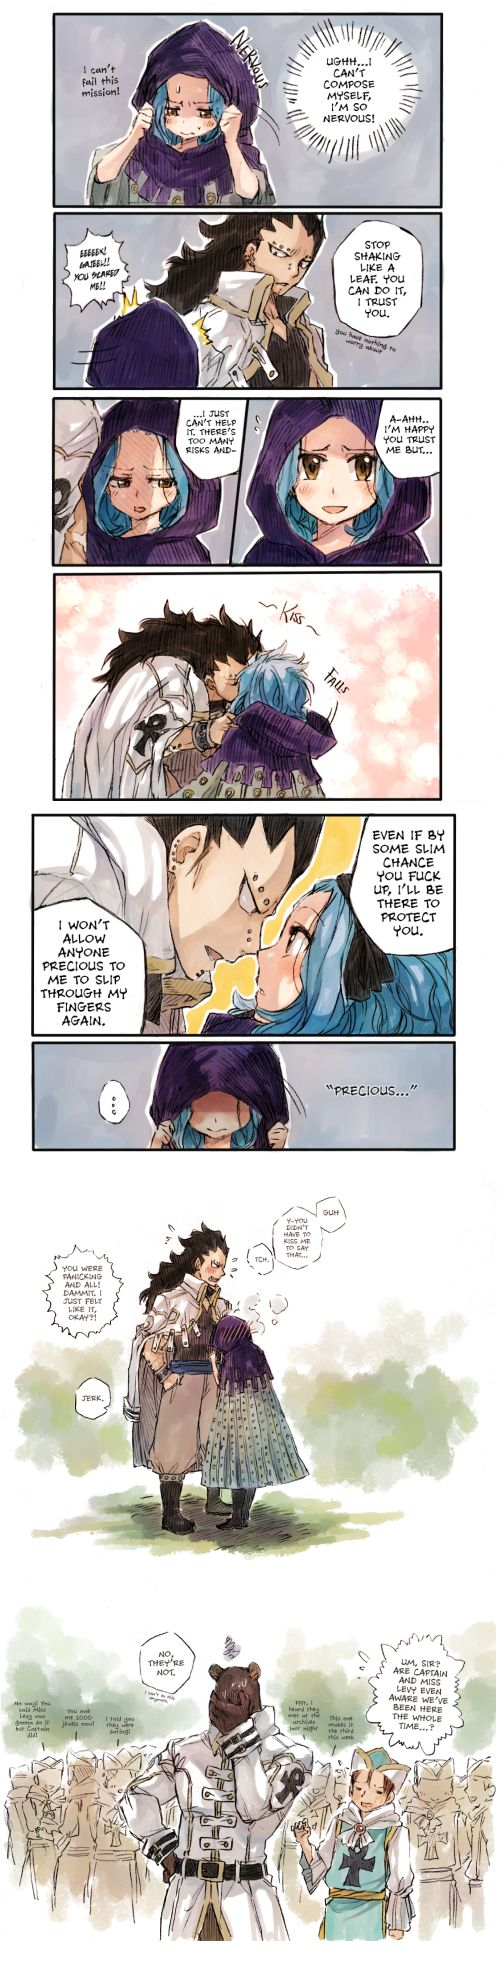 Gajeel & Levy | Fairy Tail